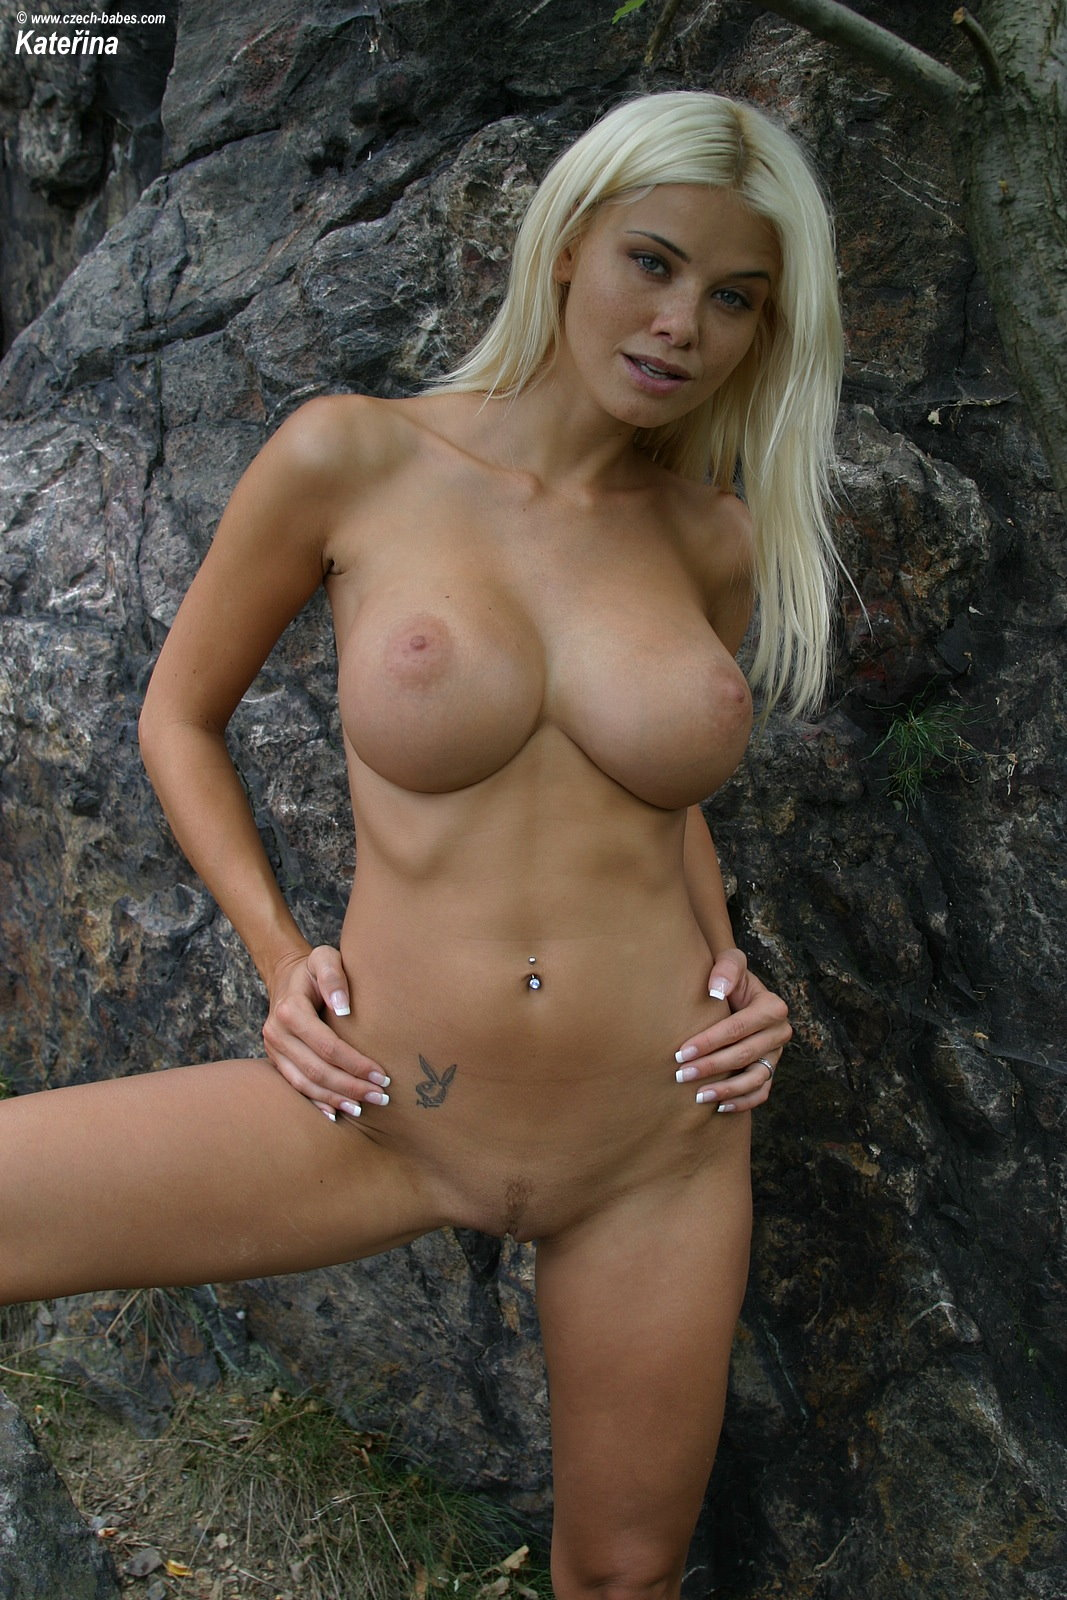 katerina-blonde-boobs-flip-flops-outdoor-naked-22